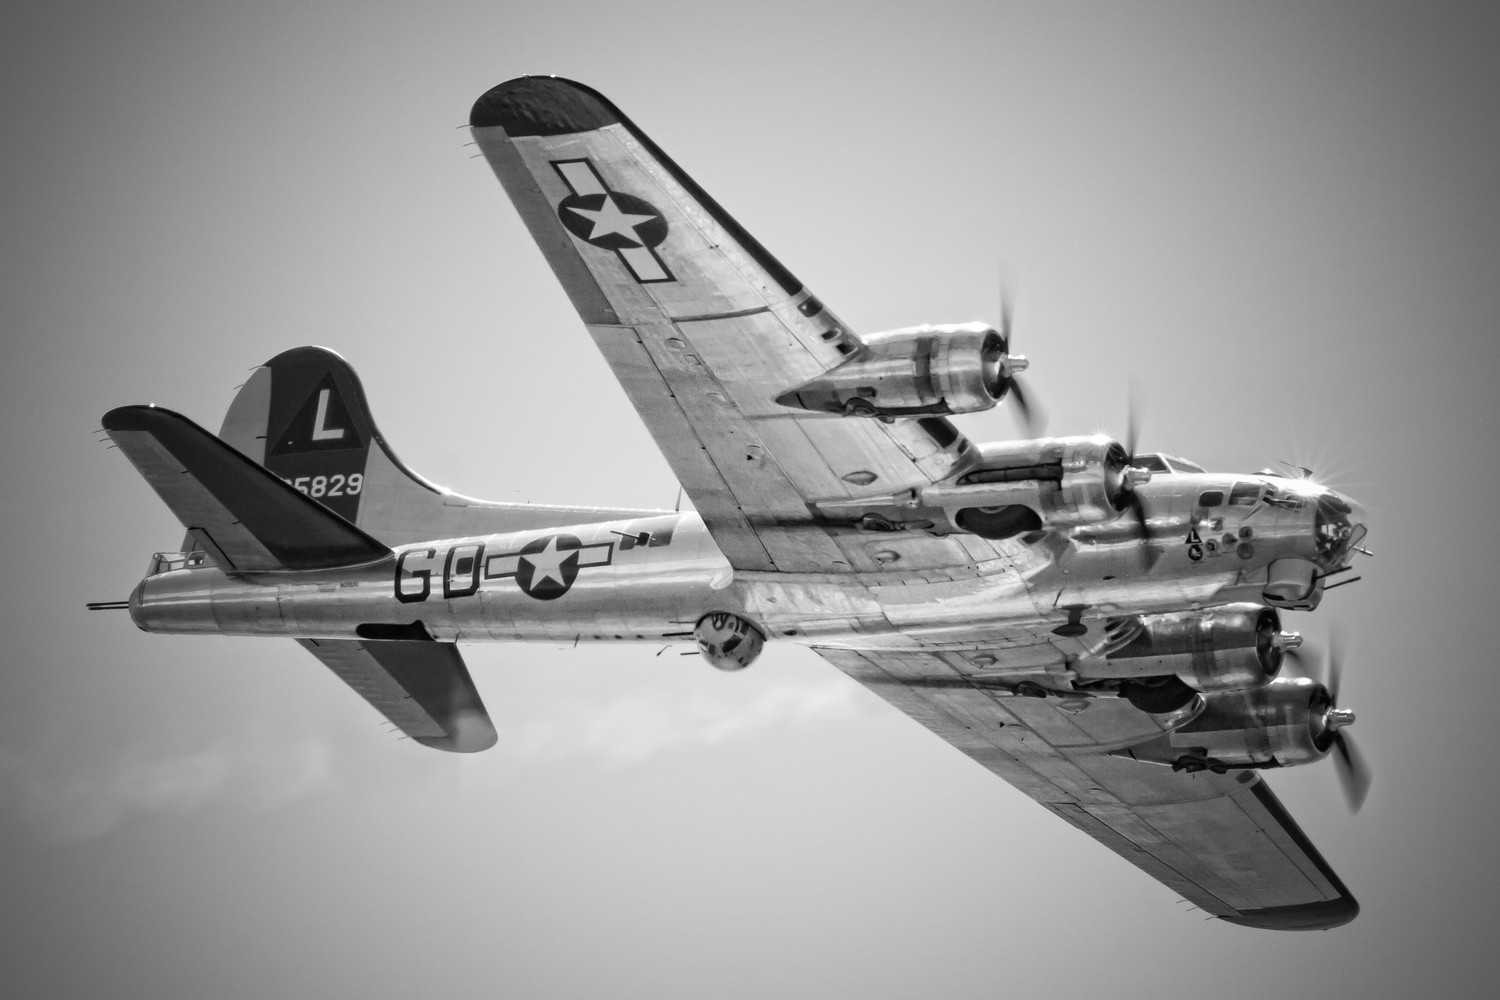 The Show will celebrate its 15th anniversary this weekend. The B17 Yankee Lady, right, flew over Jones Beach during the 2014 show.